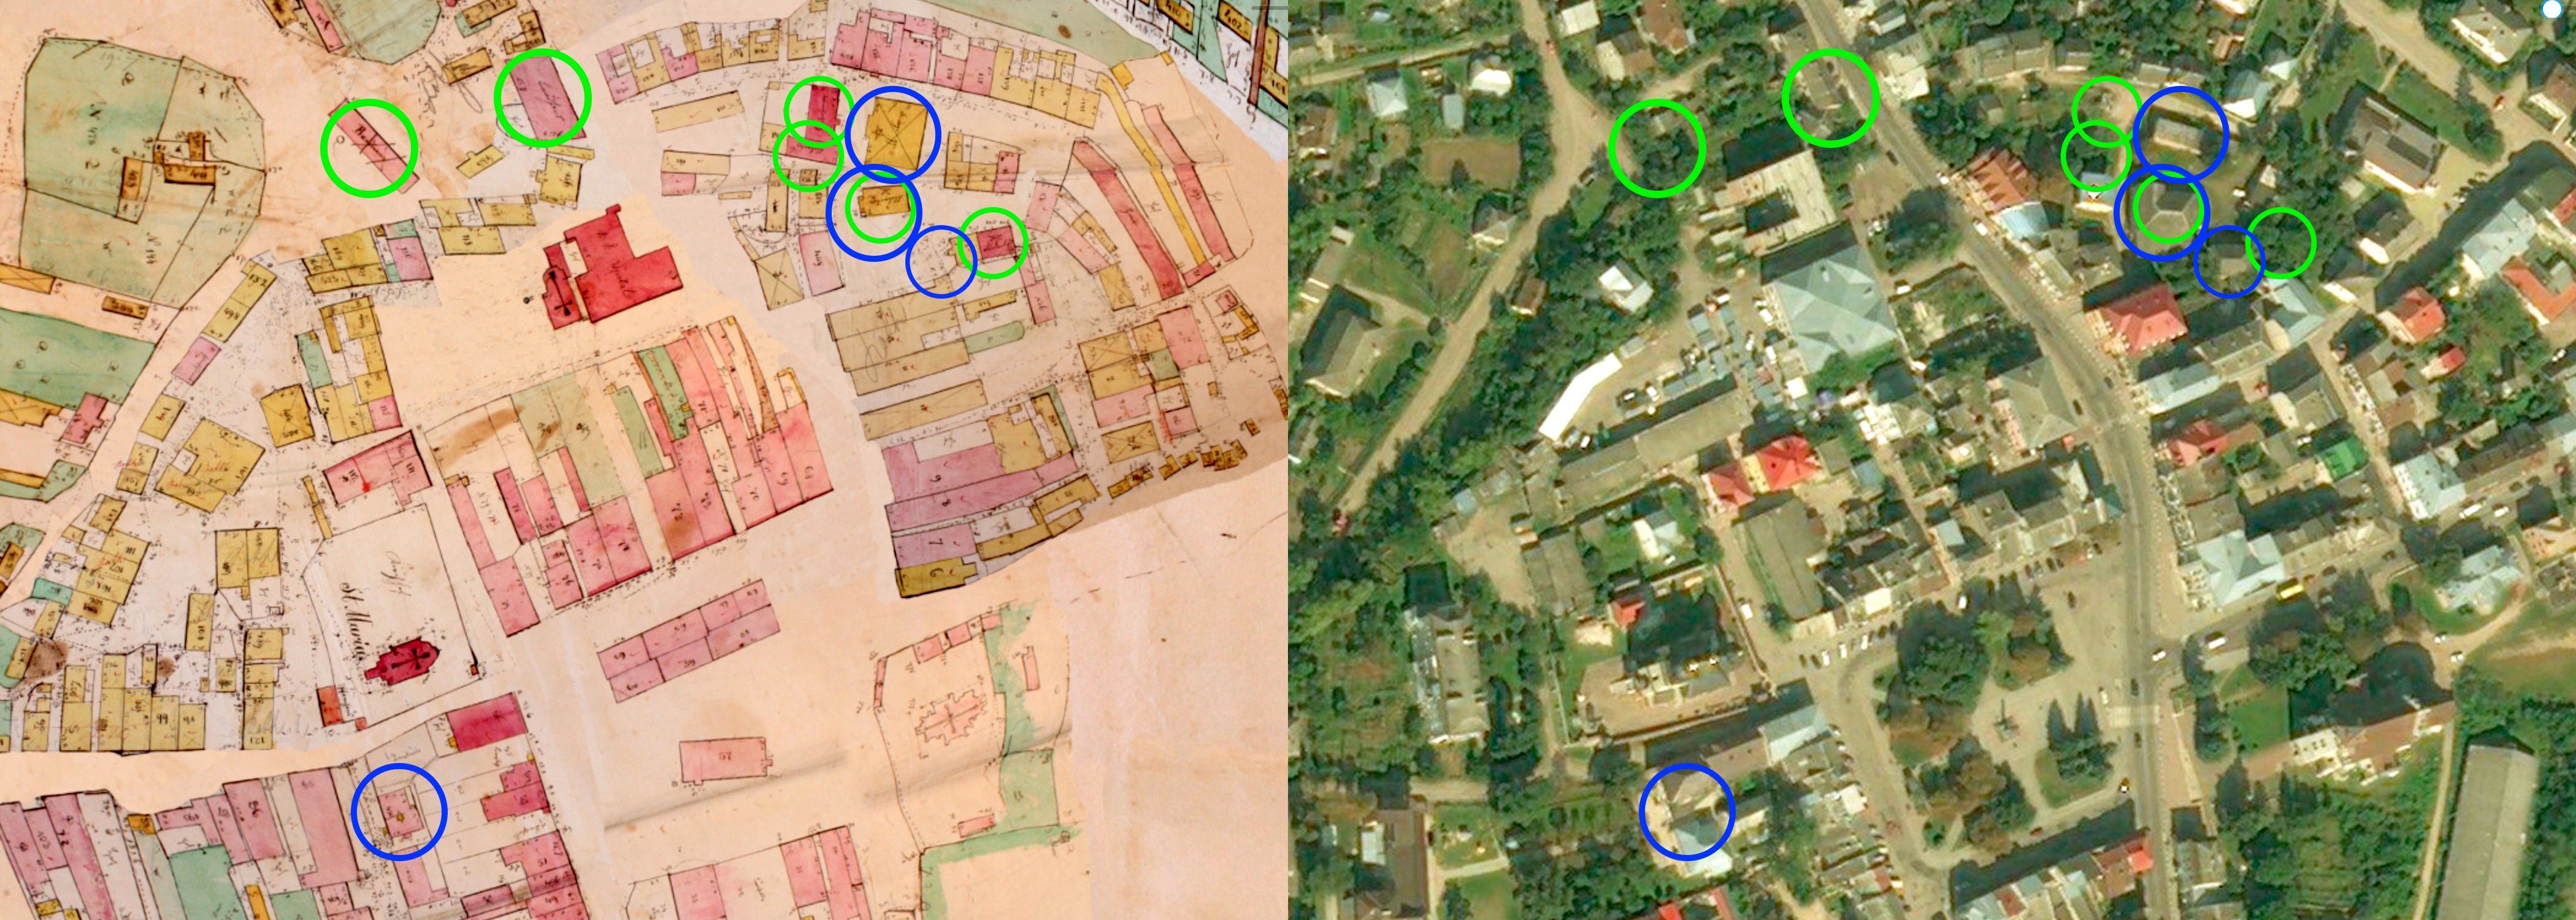 Known Jewish community buildings (blue circles) located located together with other recorded and possible Jewish buildings (green circles)